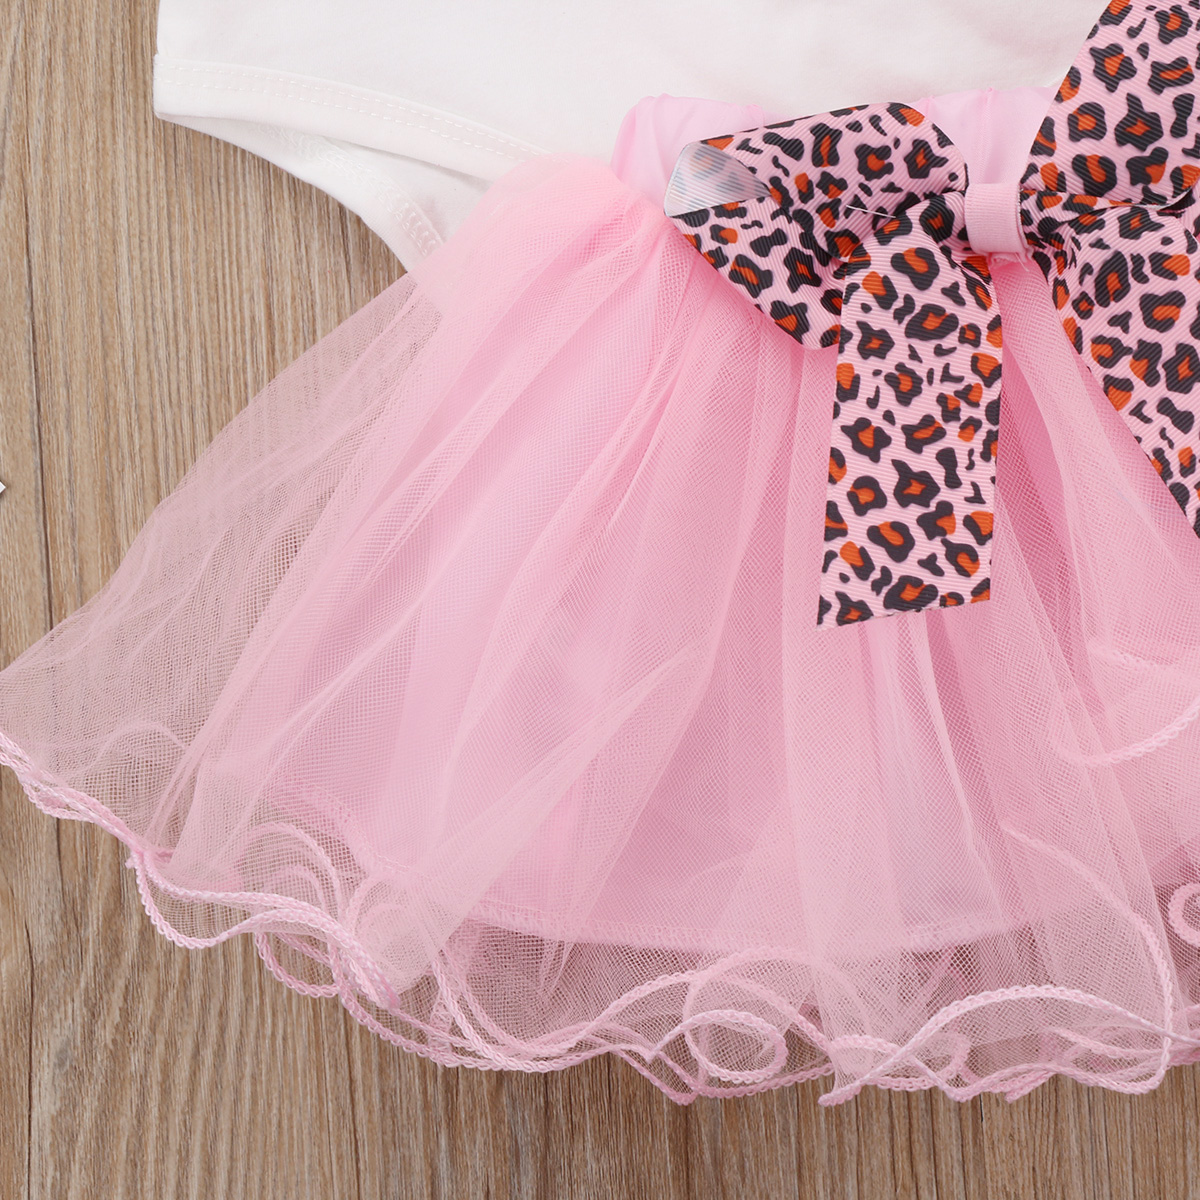 Pudcoco Newborn Infant Baby Girl Princess Clothing Sets Cotton Romper Tops Playsuit+Tulle Skirt Outfits